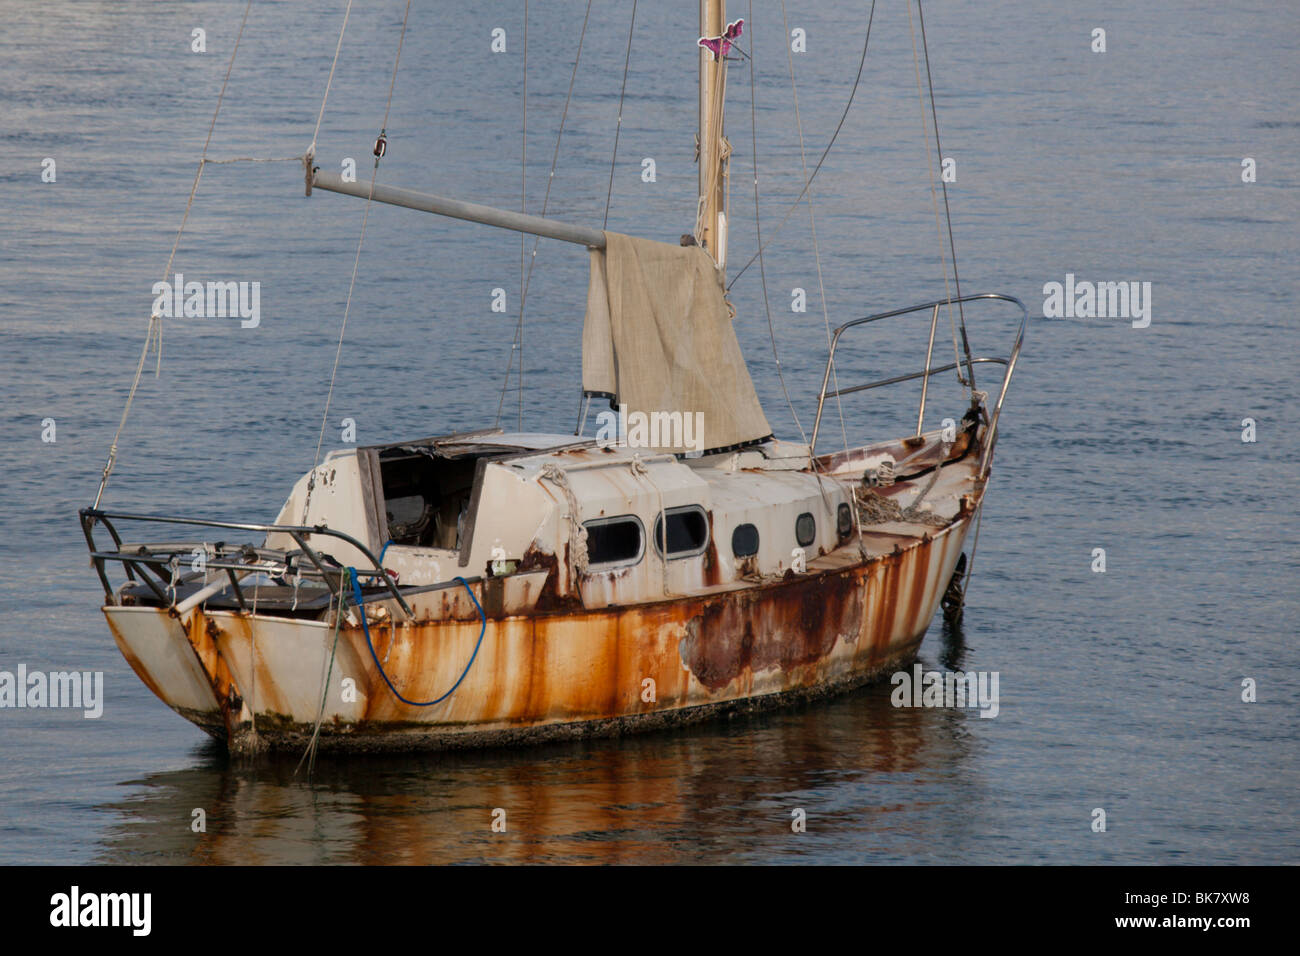 An neglected sailing boat sits at anchor on the Intracoastal waterway,Palm Beach, Florida Stock Photo